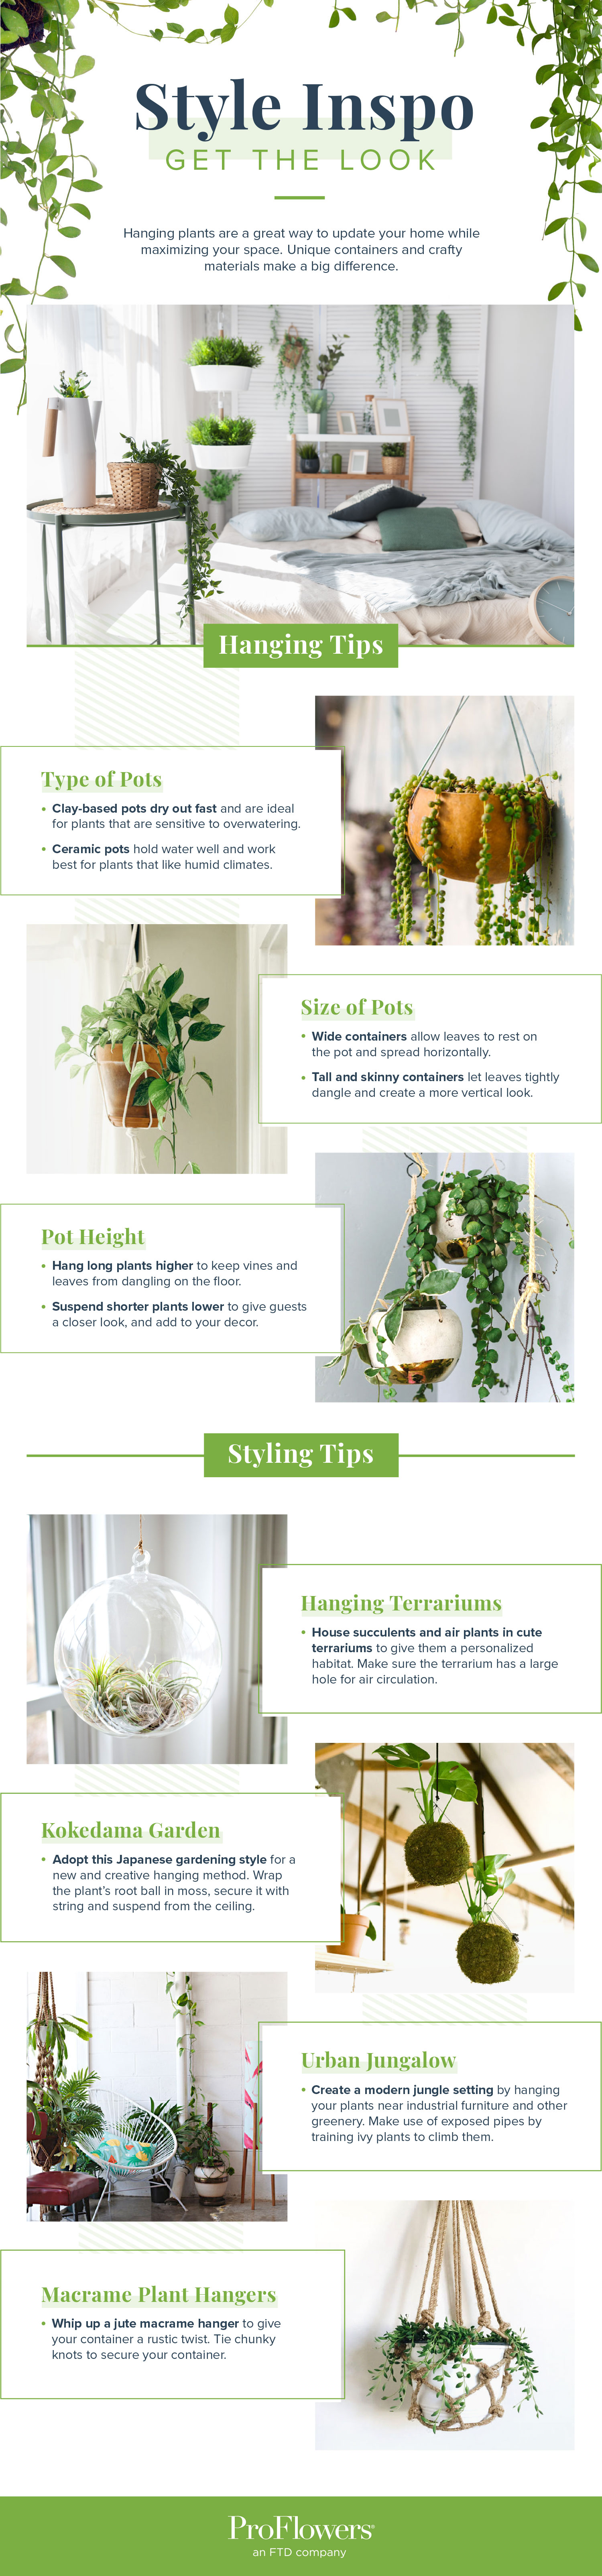 indoor hanging plants styling tips